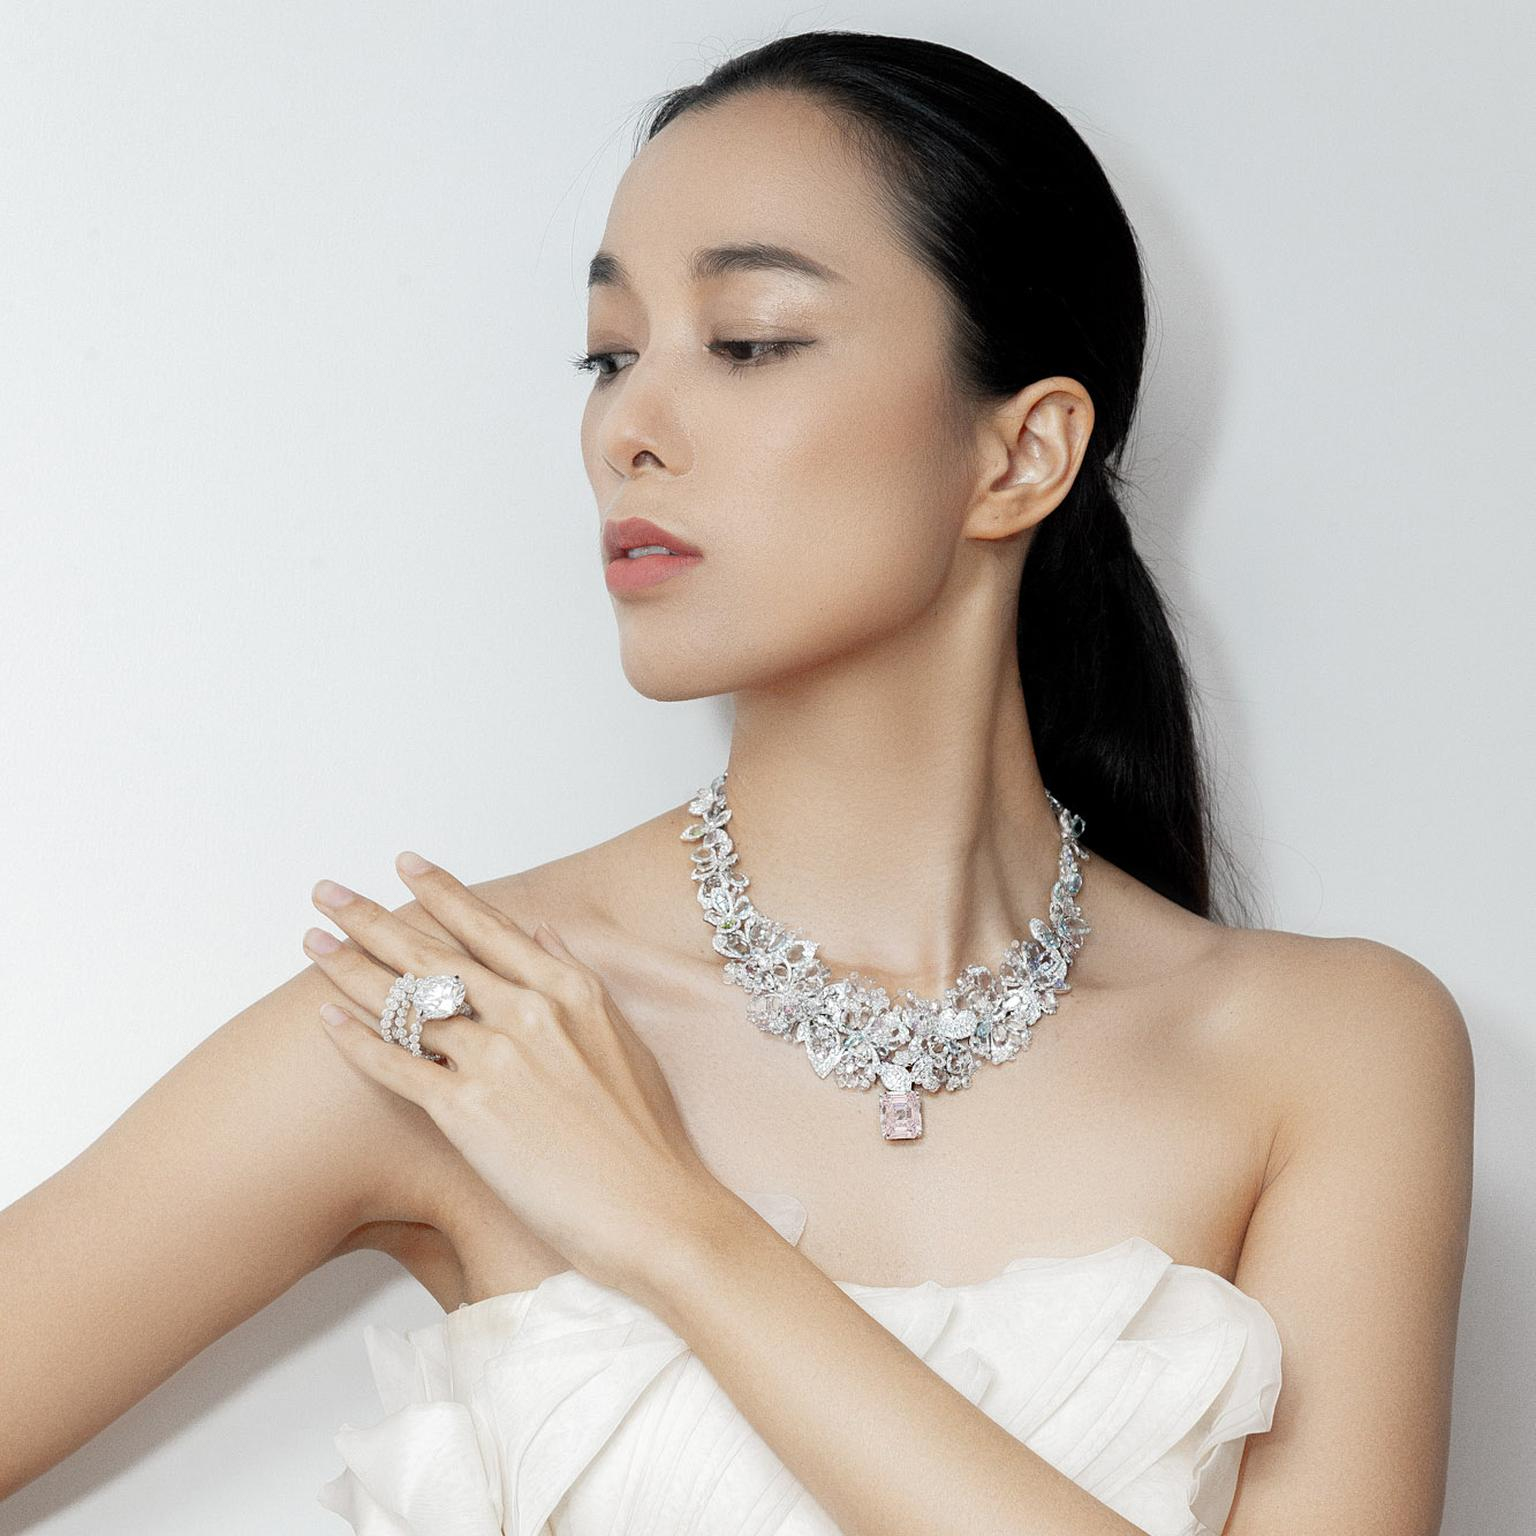 Fountain of diamonds ring (Lot 648) and Les Jardins de Giverny necklace (Lot 649) by Feng J